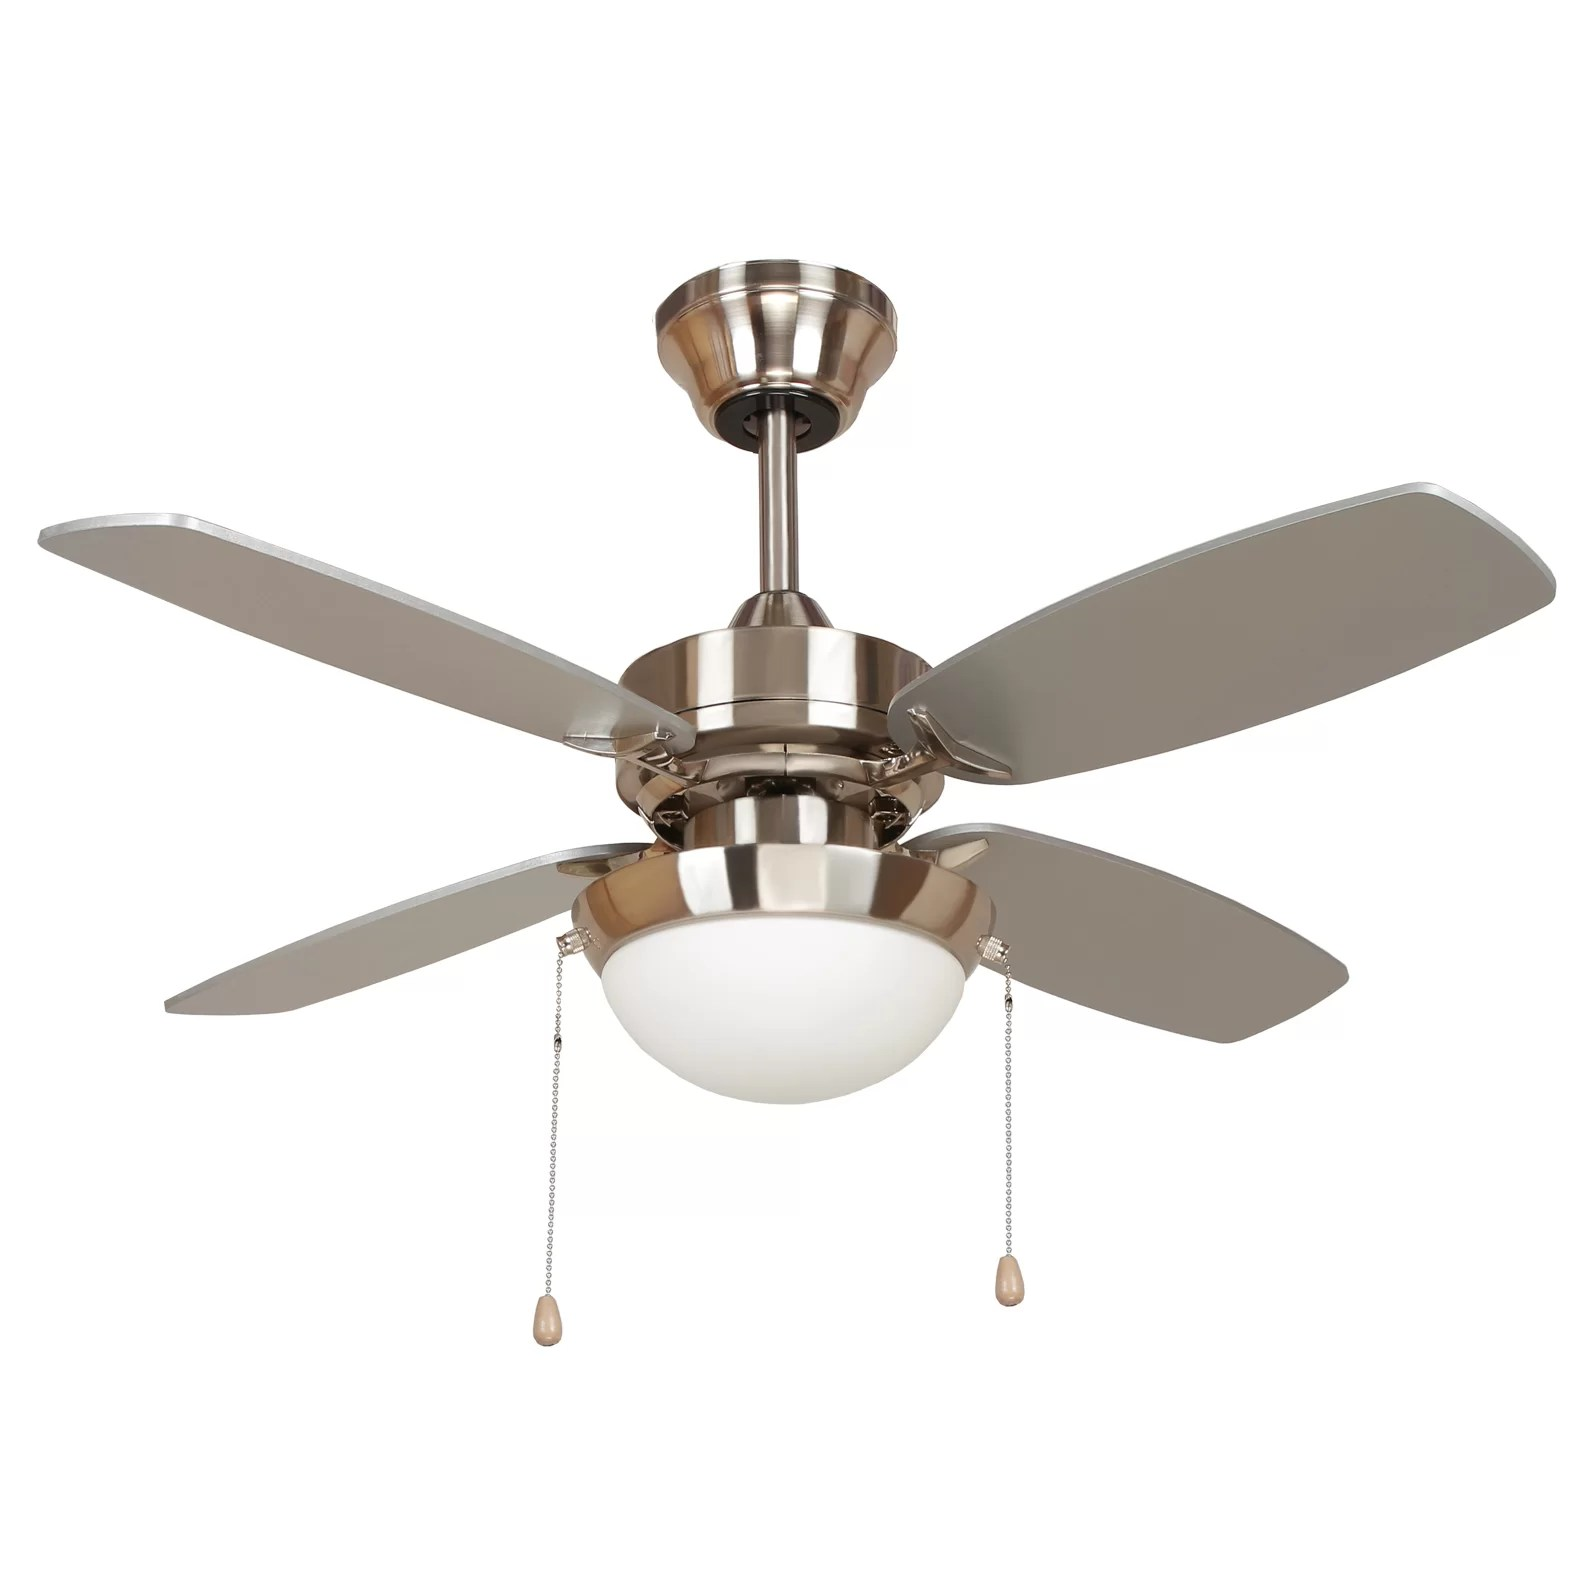 Home Decorations Ceiling Fans Yosemite Home Decor 36 Quot Ashley 4 Blade Ceiling Fan